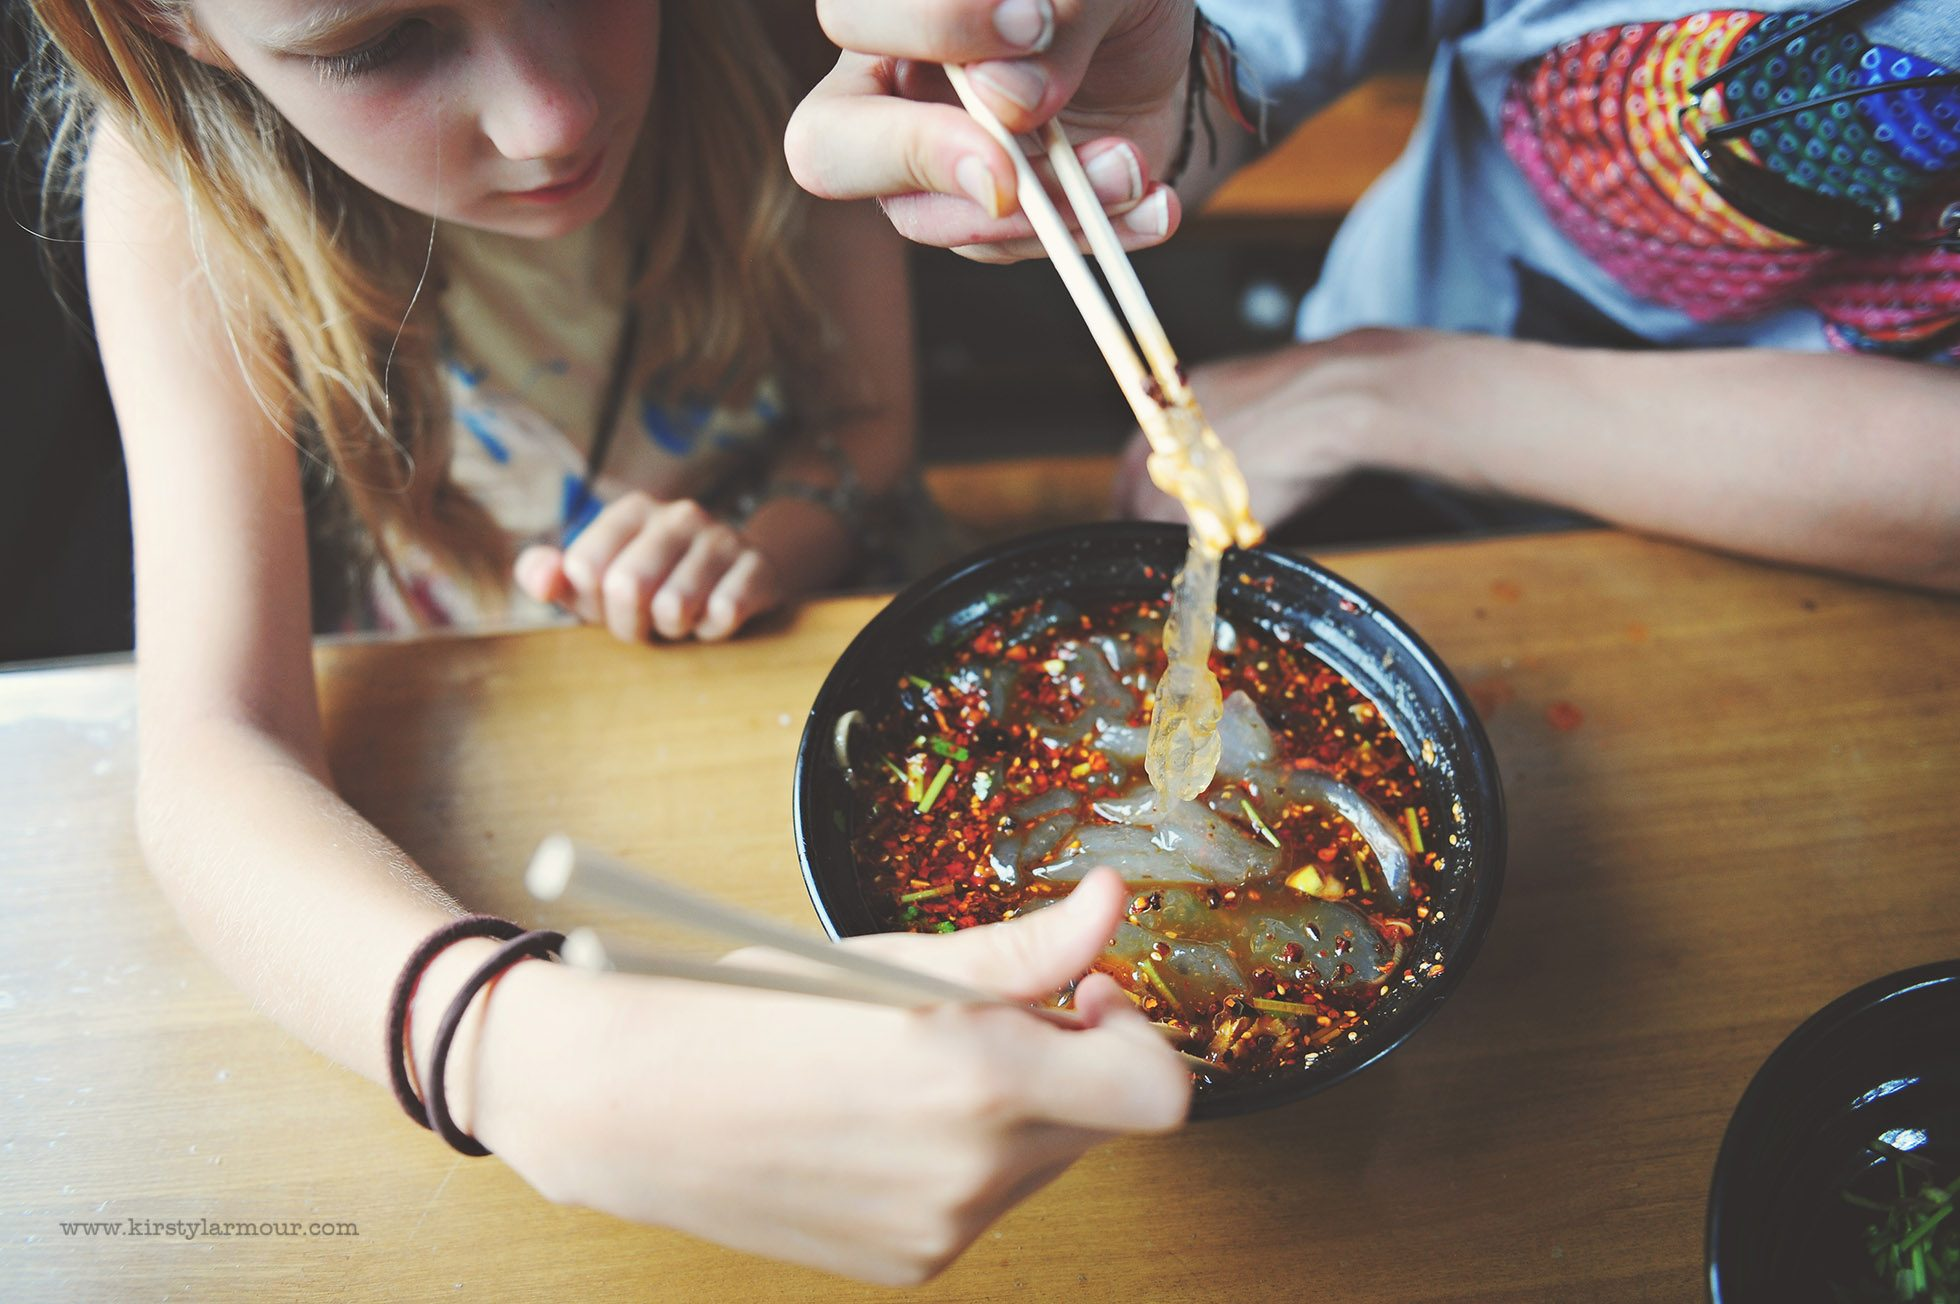 Spicy Shaanxi noodles in China by Kirsty Larmour